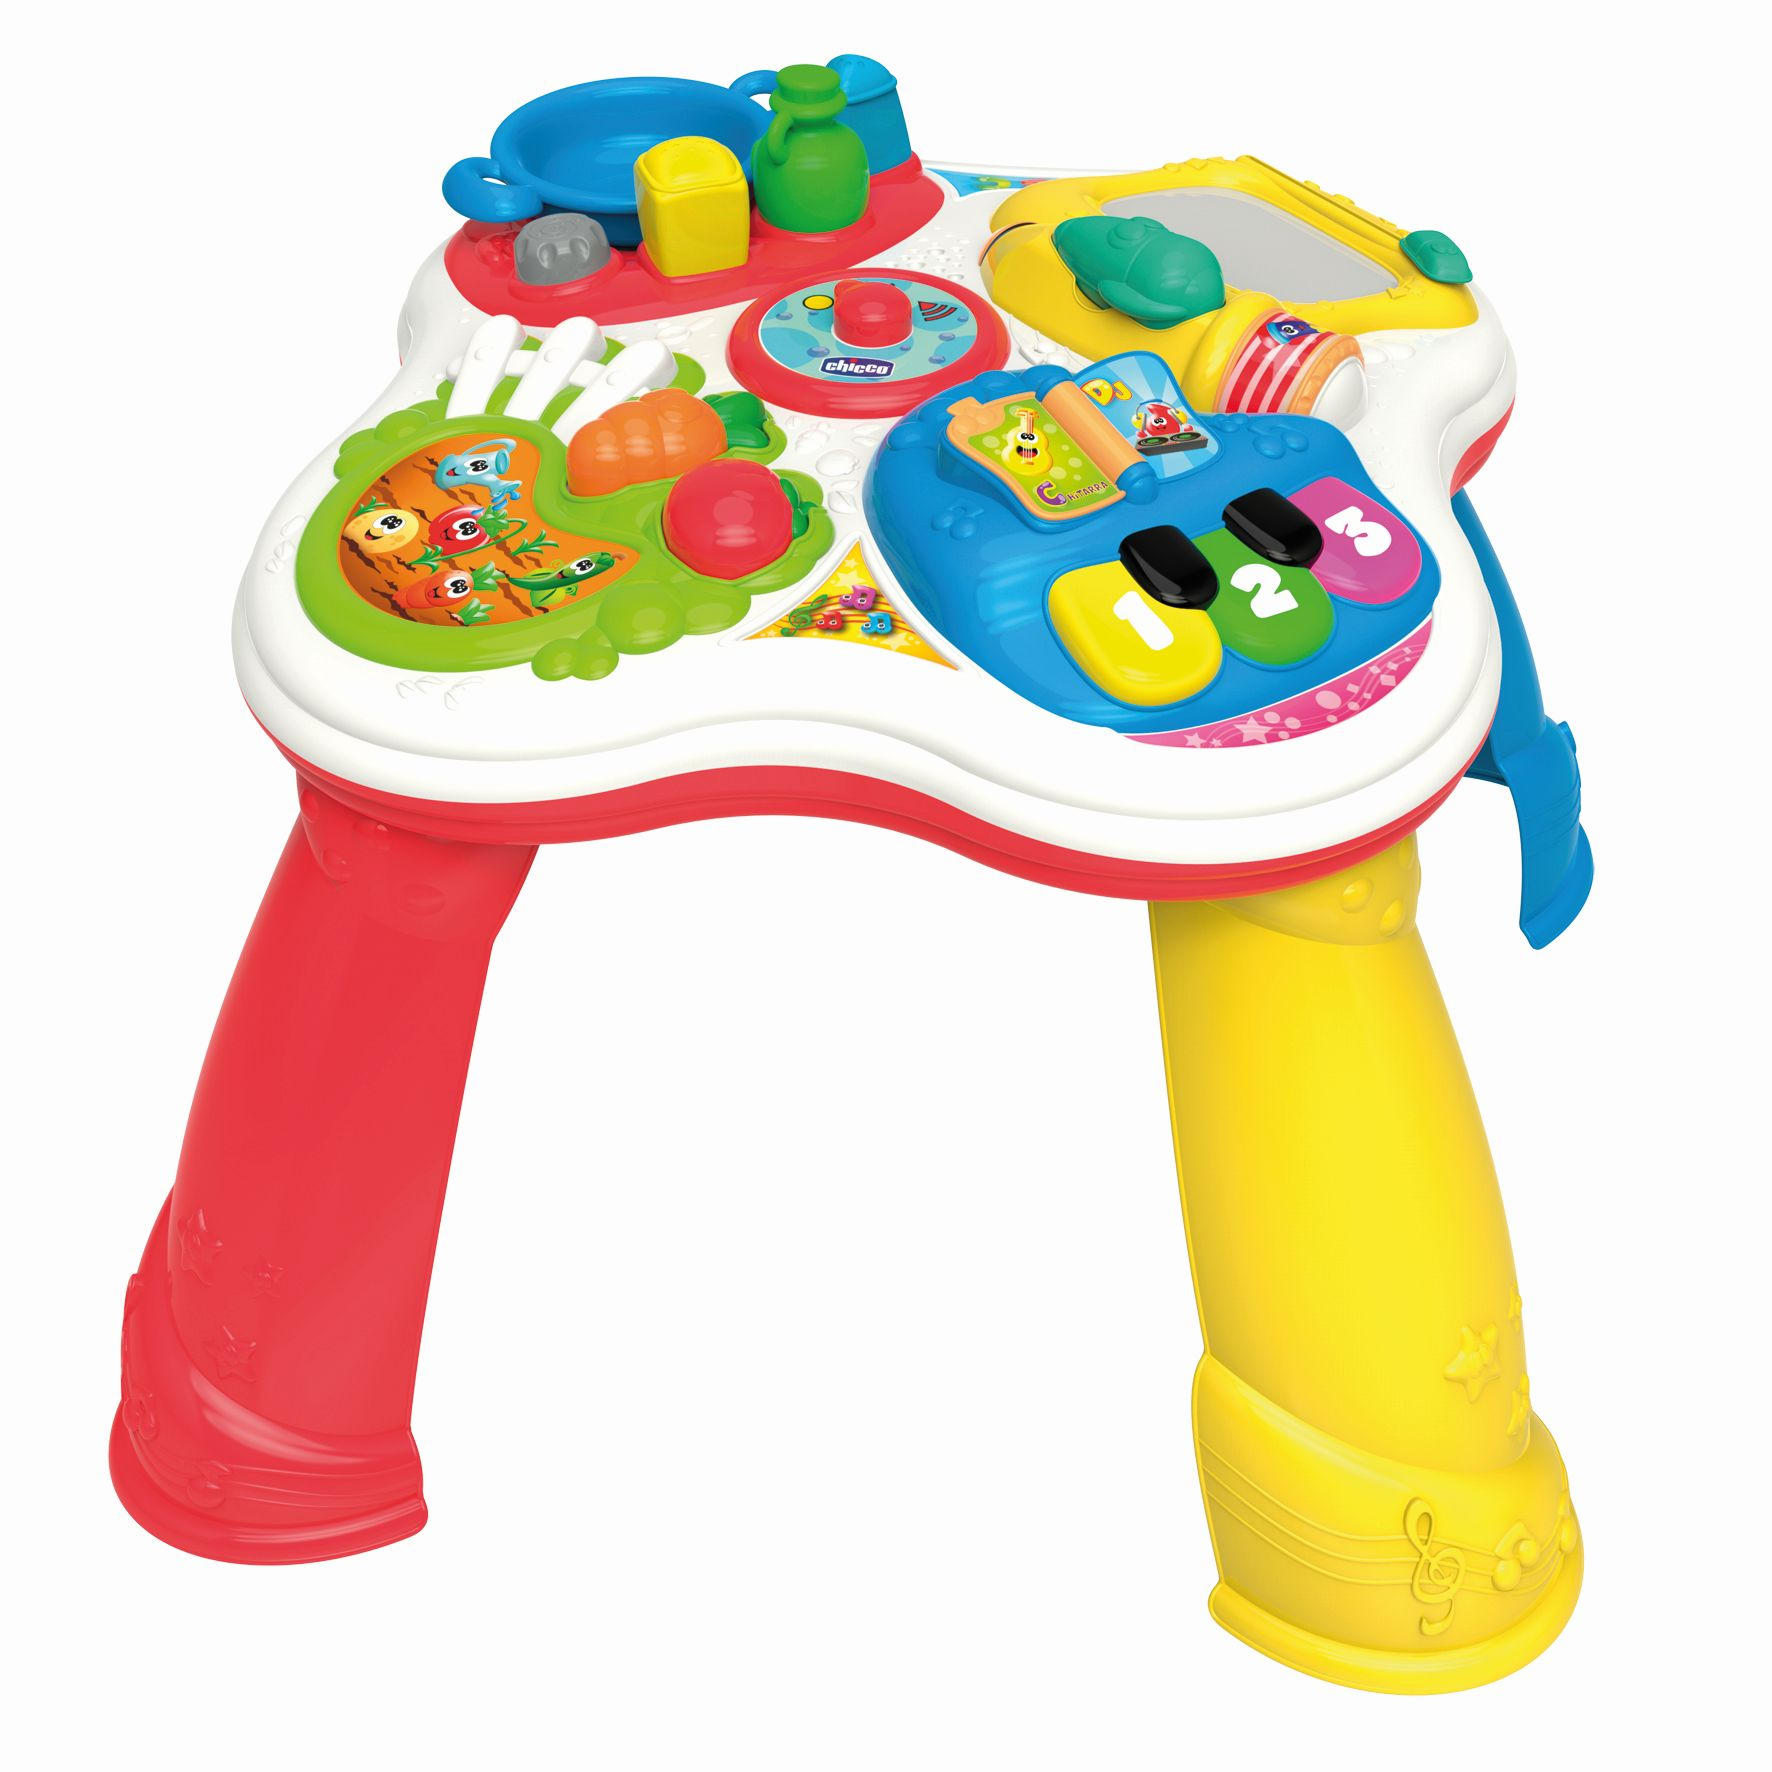 Chicco hobbies table buy at kidsroom toys baby toys for Chicco seggiolino tavolo